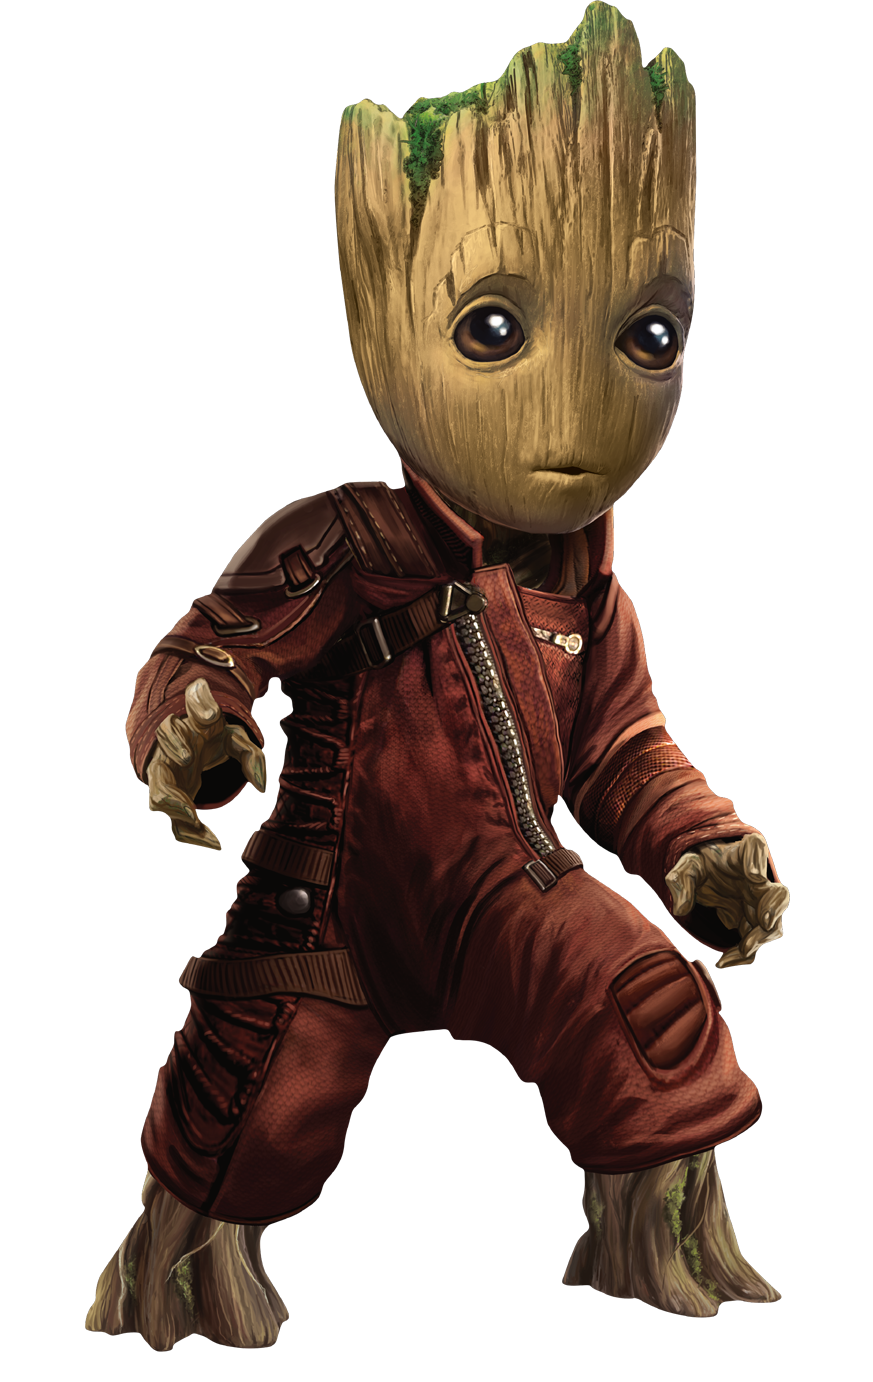 image guardians of the galaxy vol2 baby groot png guardian angel prayer clipart guardian angels clipart funny